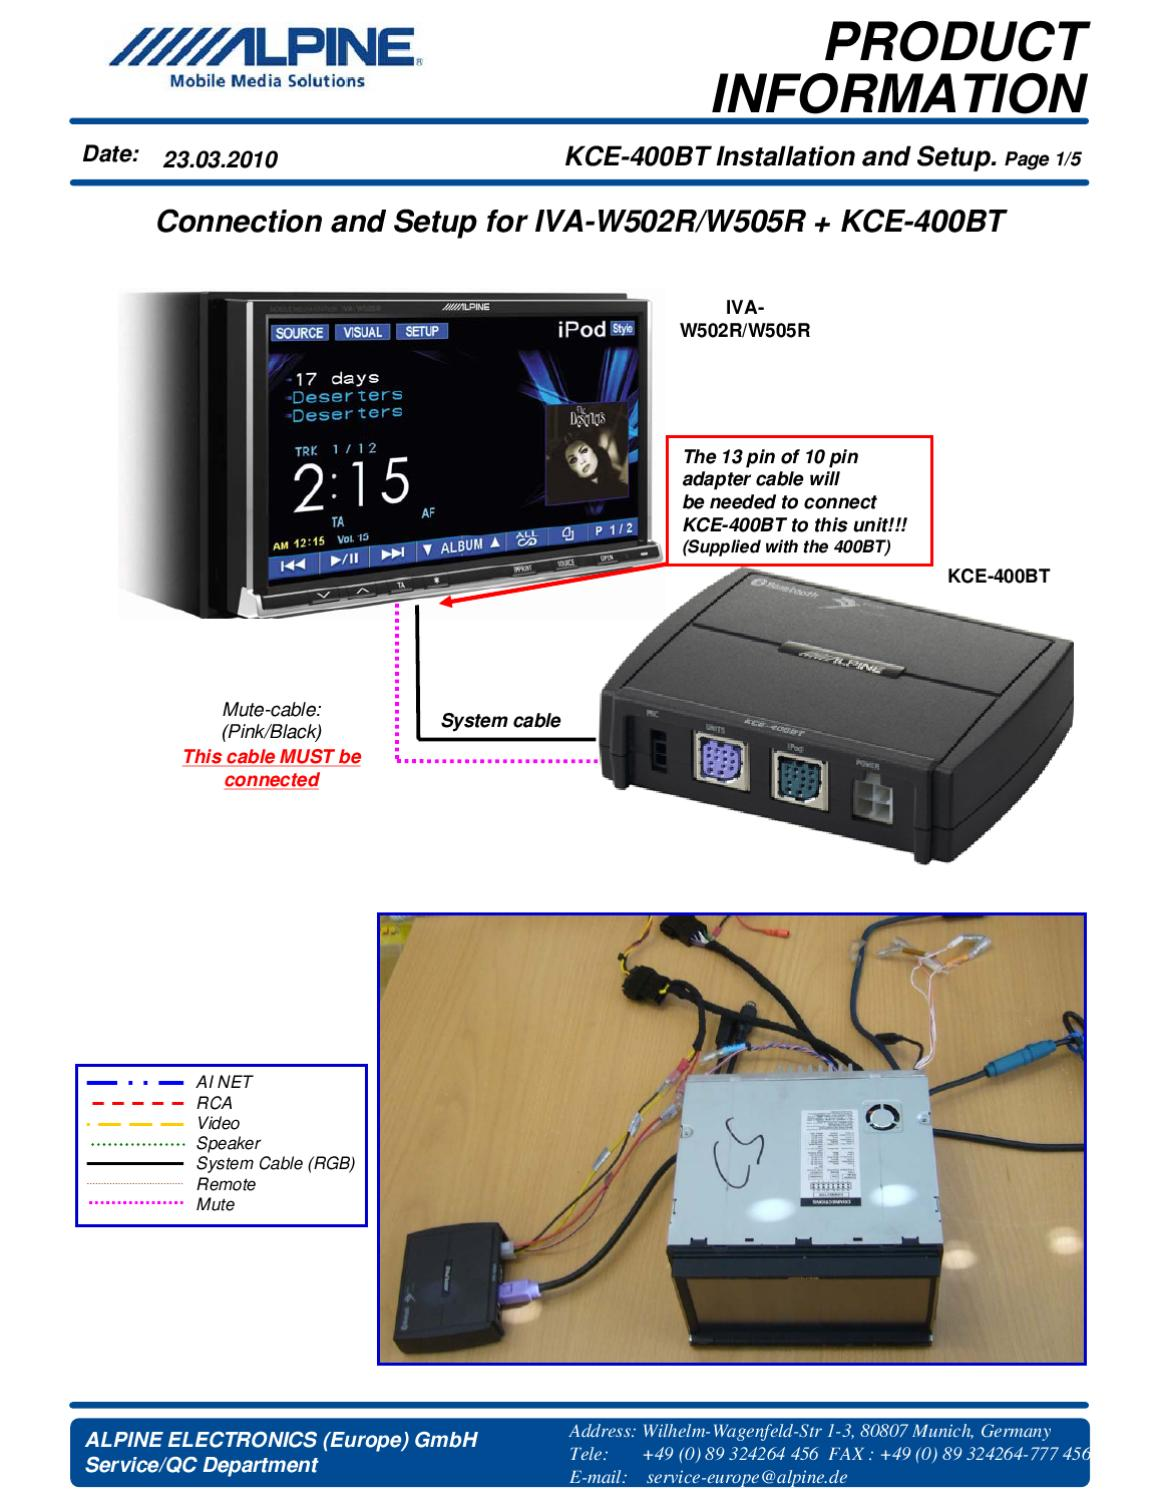 Product Information For Iva-w502   Kce-400bt By Alpine Electronics Of Uk Ltd